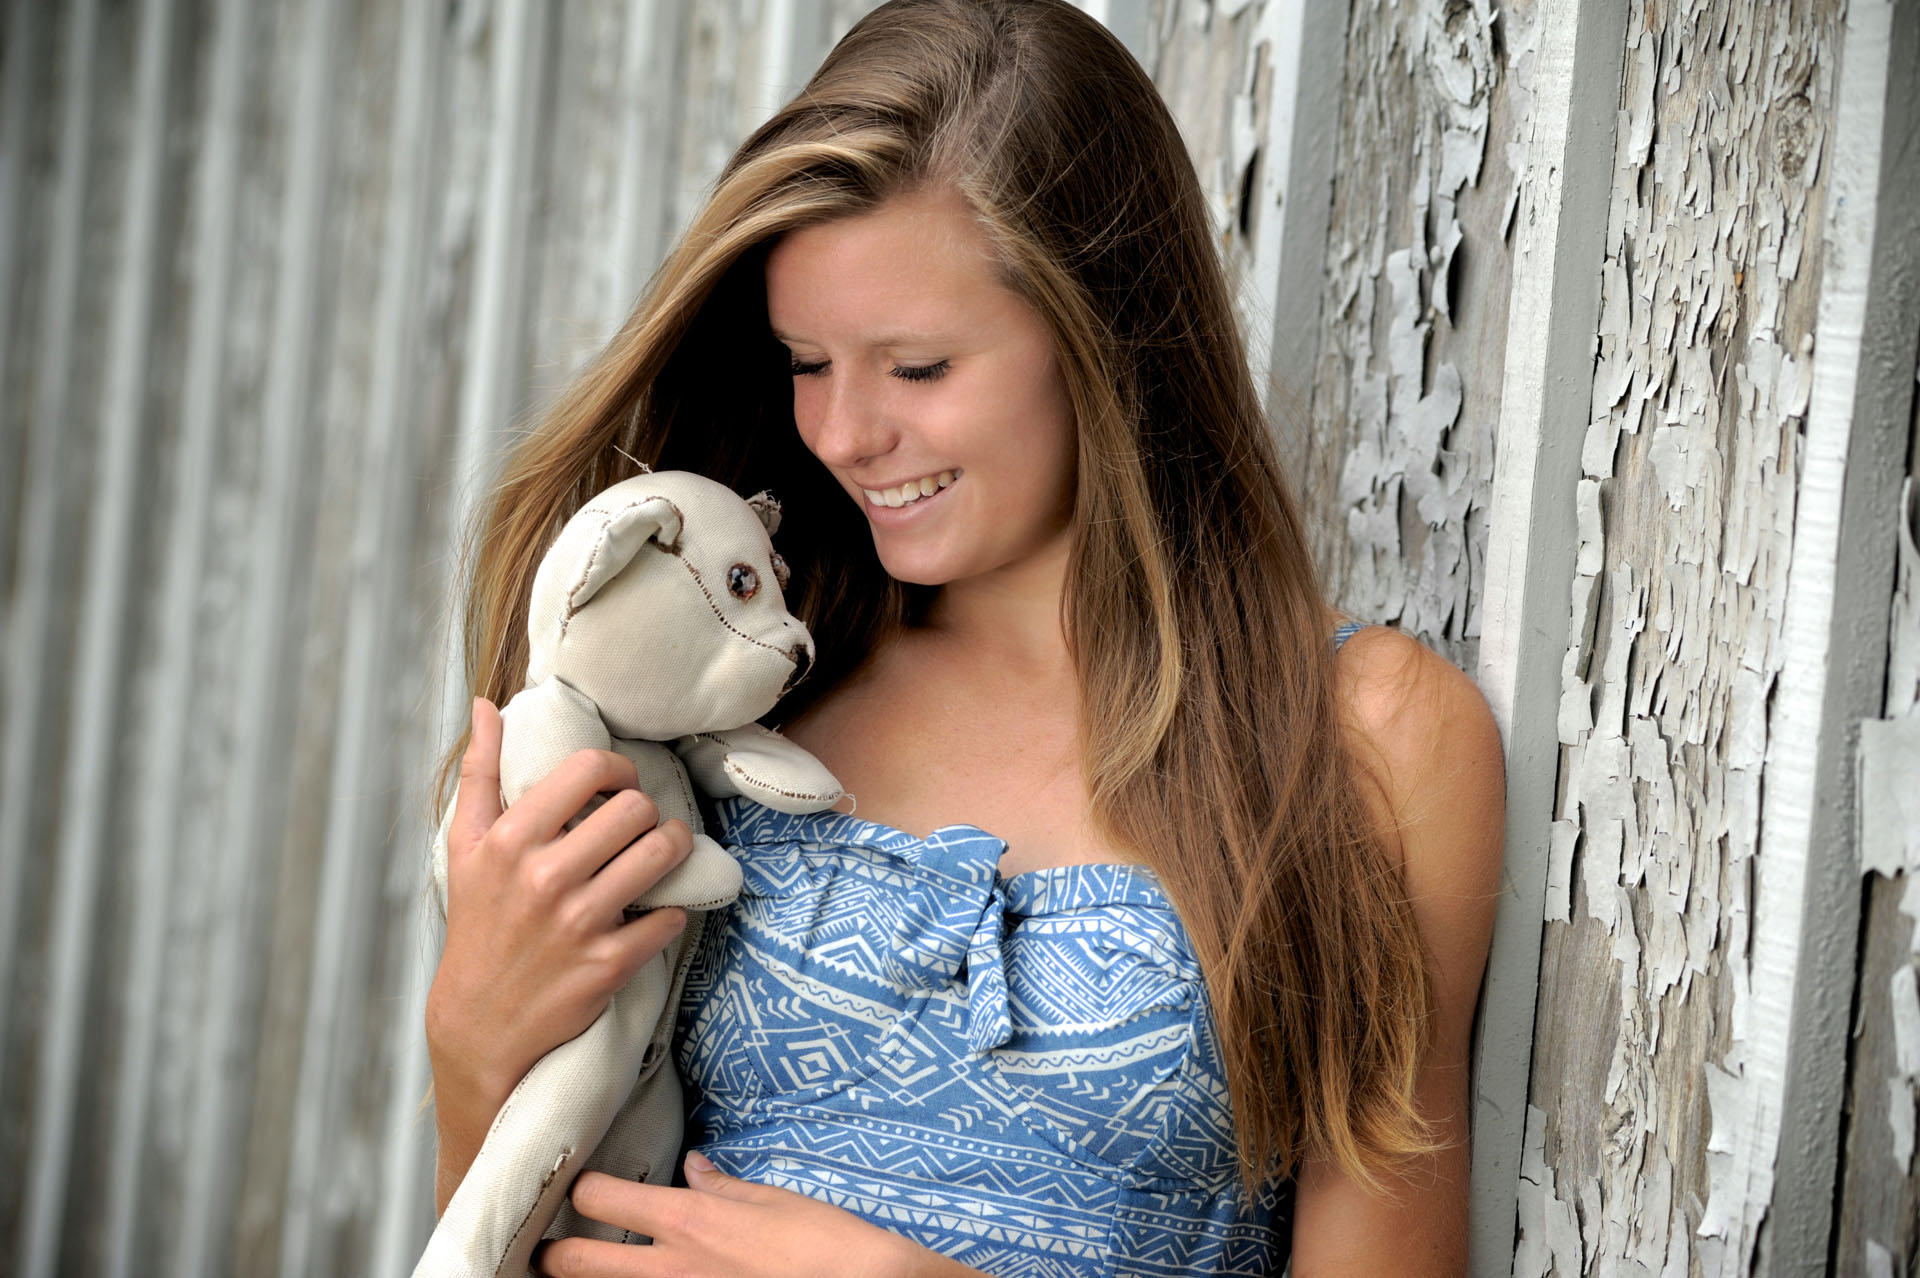 Troy , Michigan senior photographer's photo taken as the high school senior plays with her old stuffed animal for her their senior pictures in Troy, Michigan.